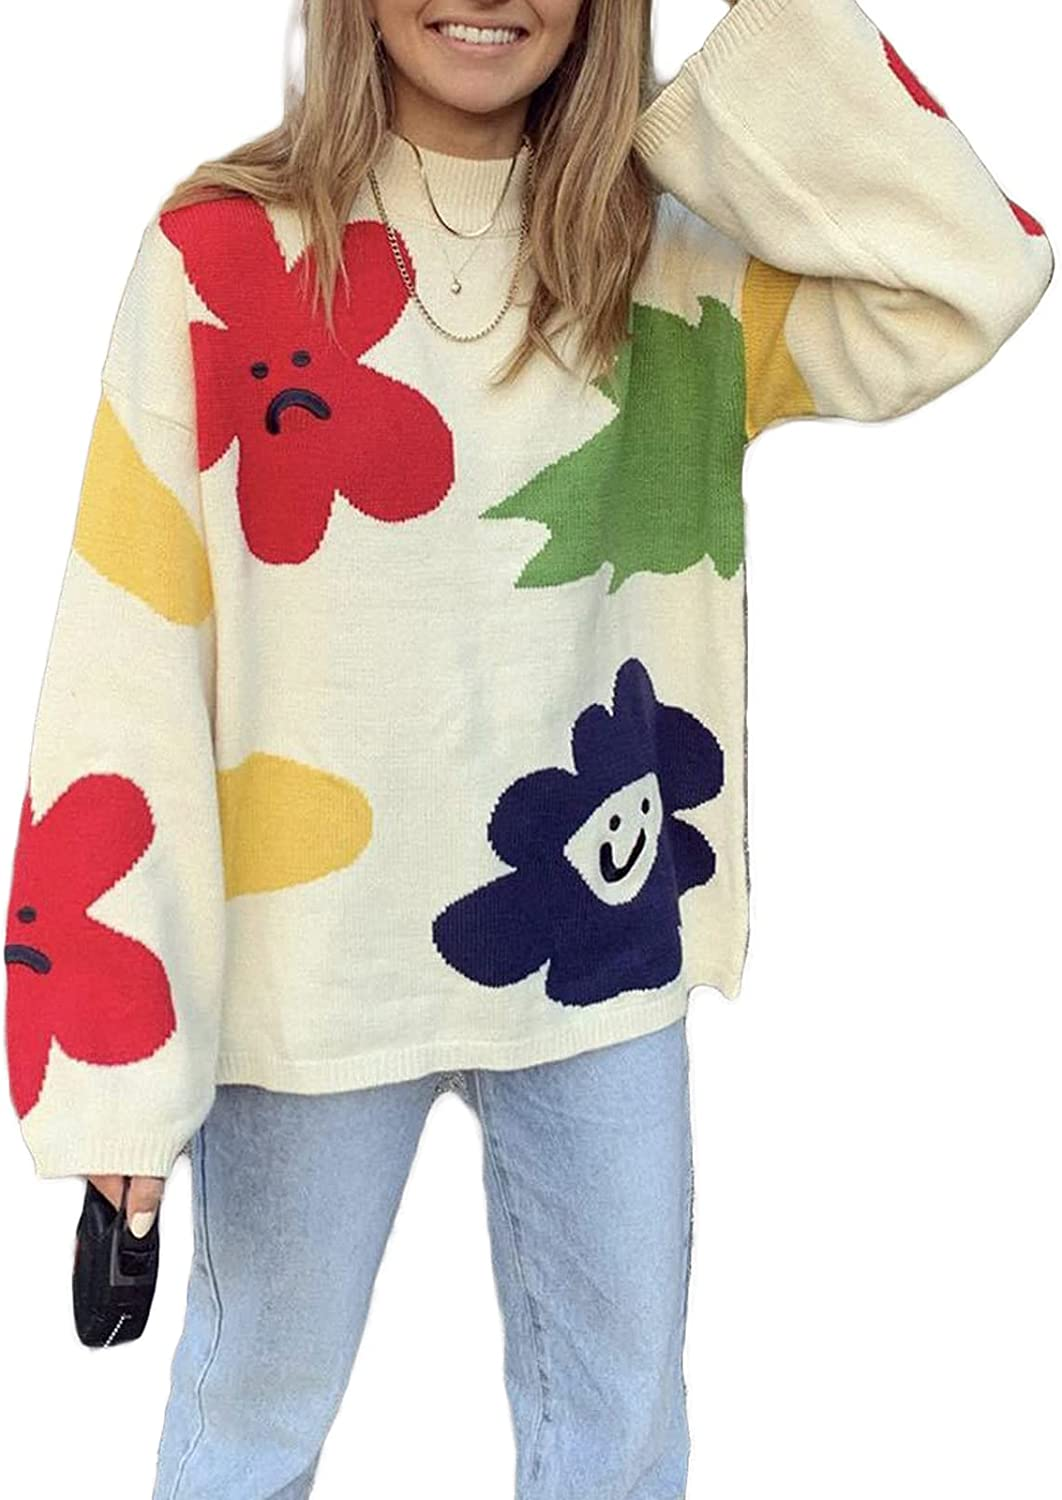 Women Cheap super special price Loose Pullover San Antonio Mall Knit Sweater Long Y2k Sweatshirt Oversized